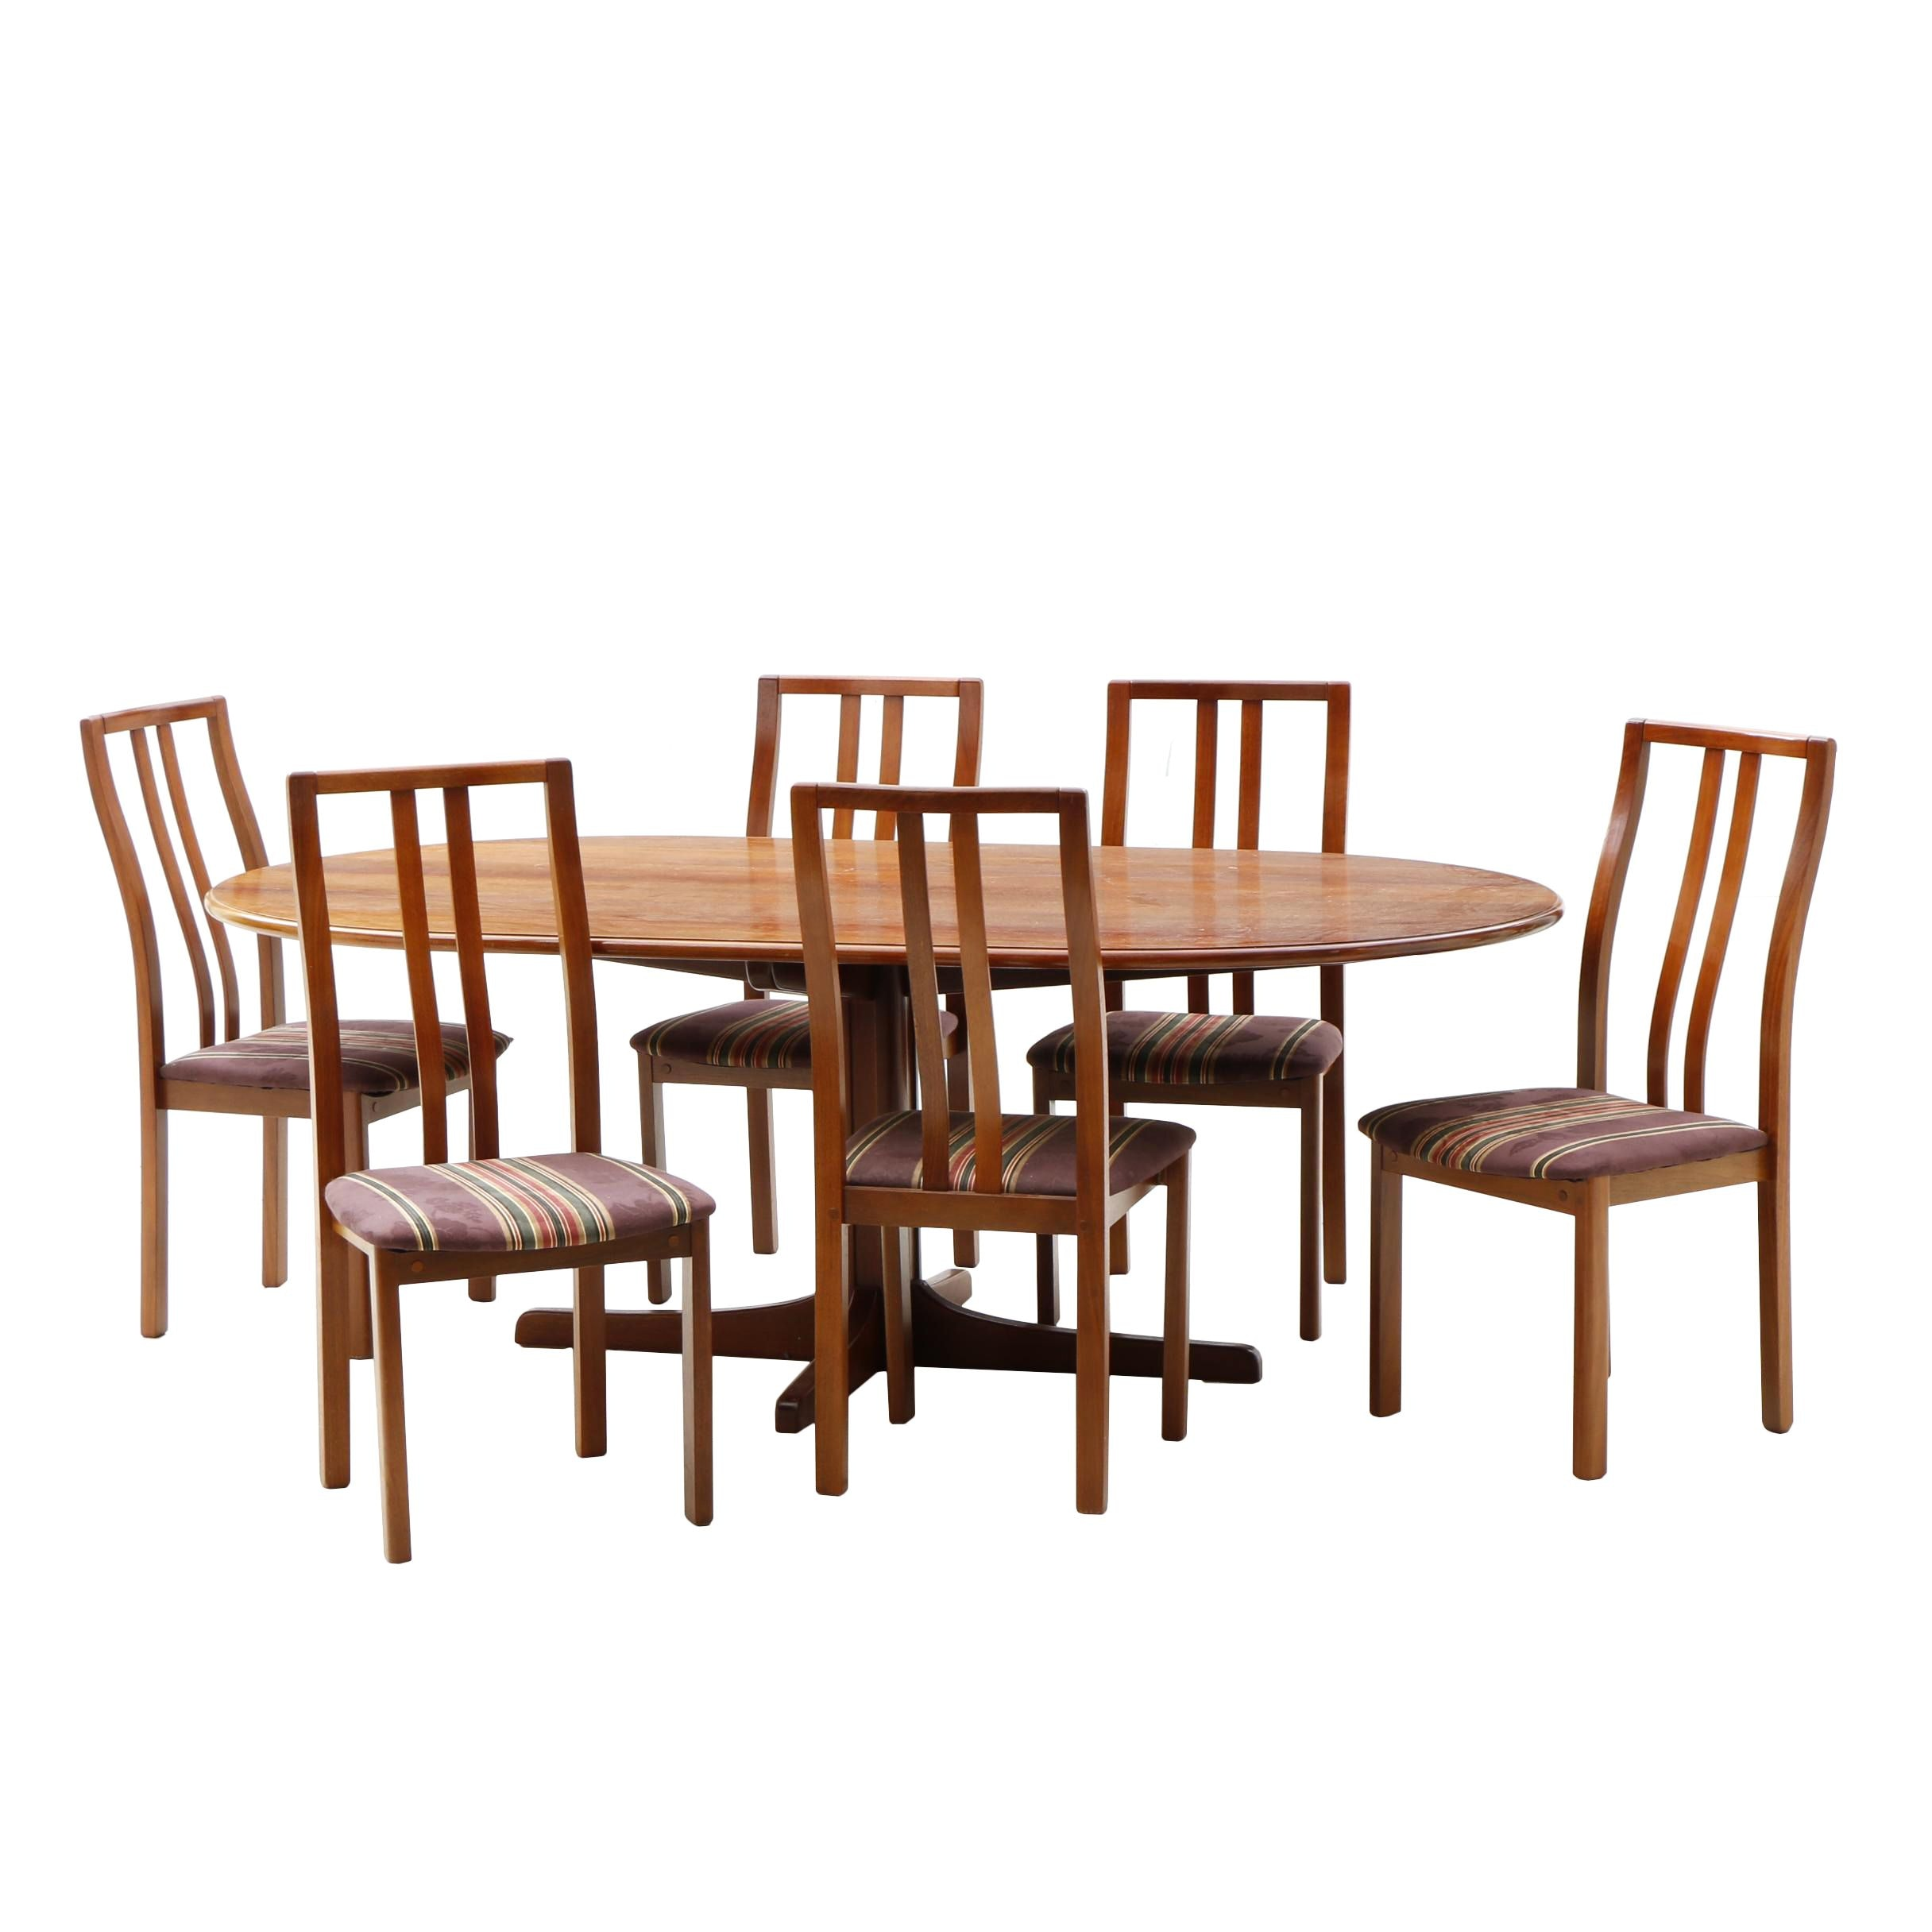 Contemporary Jarrah Wood Dining Set by BVR